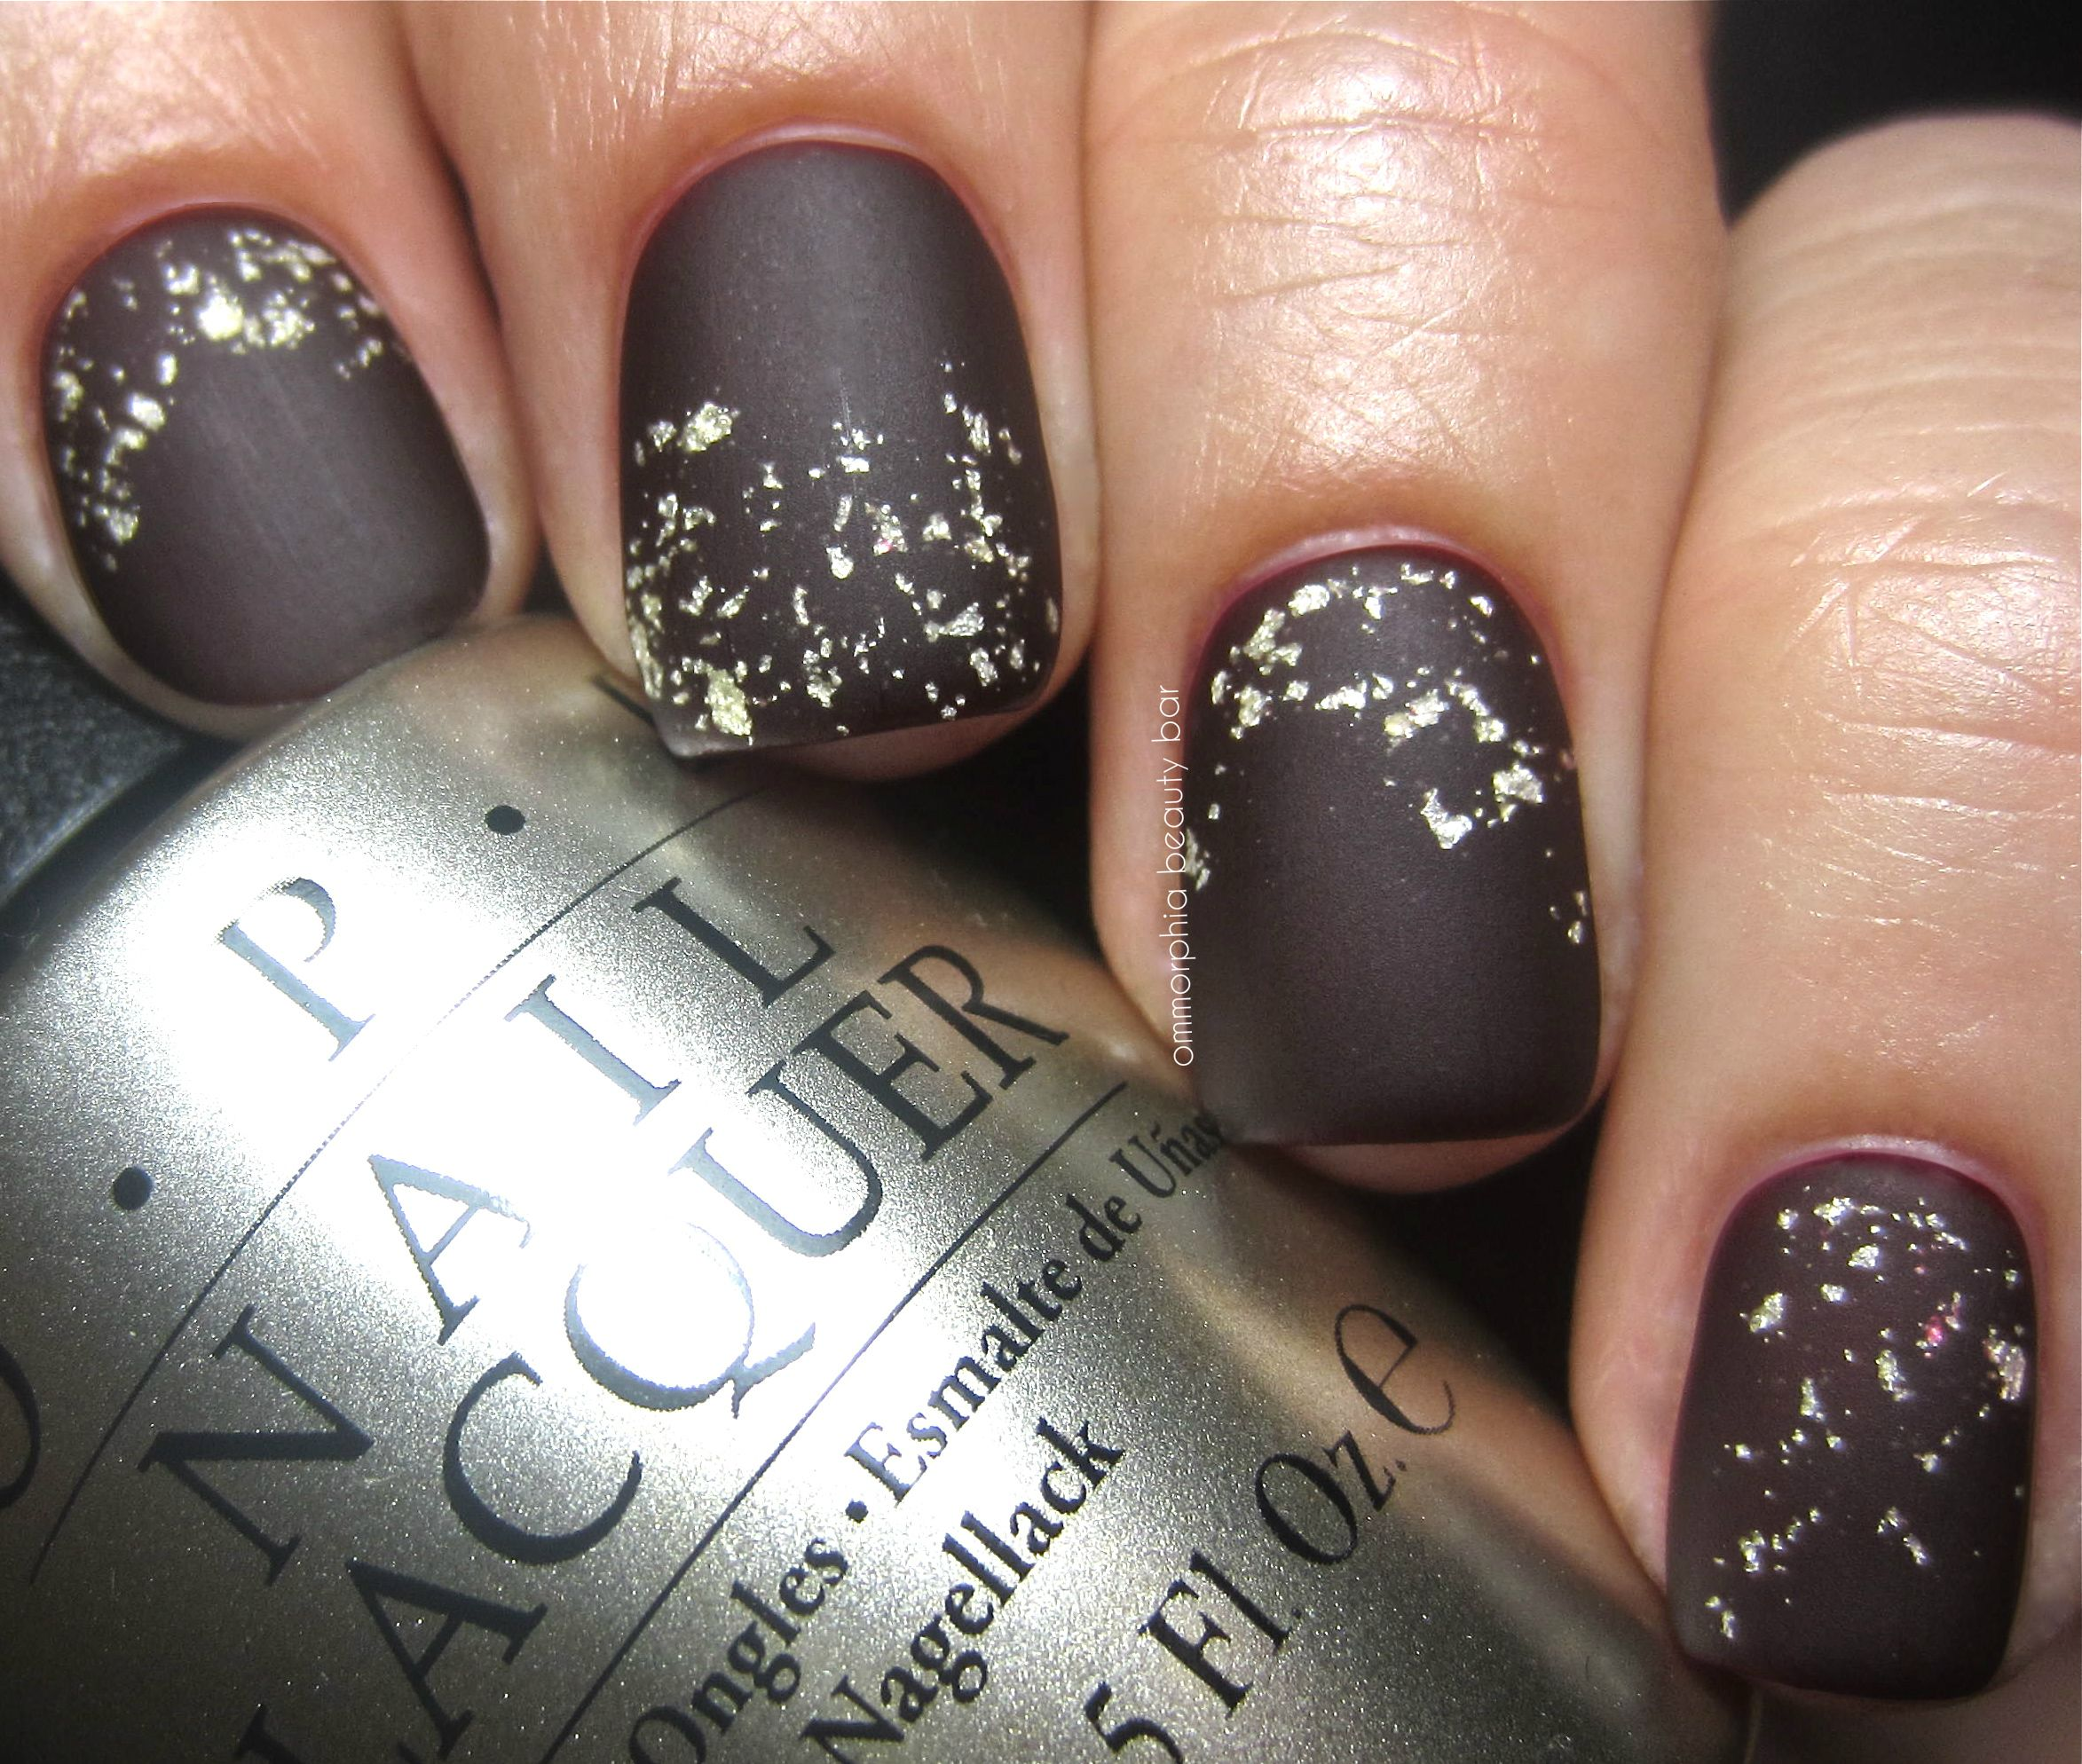 Ommorphia: OPI – Pure 18k Gold & Silver Top Coat (over Visions of ...